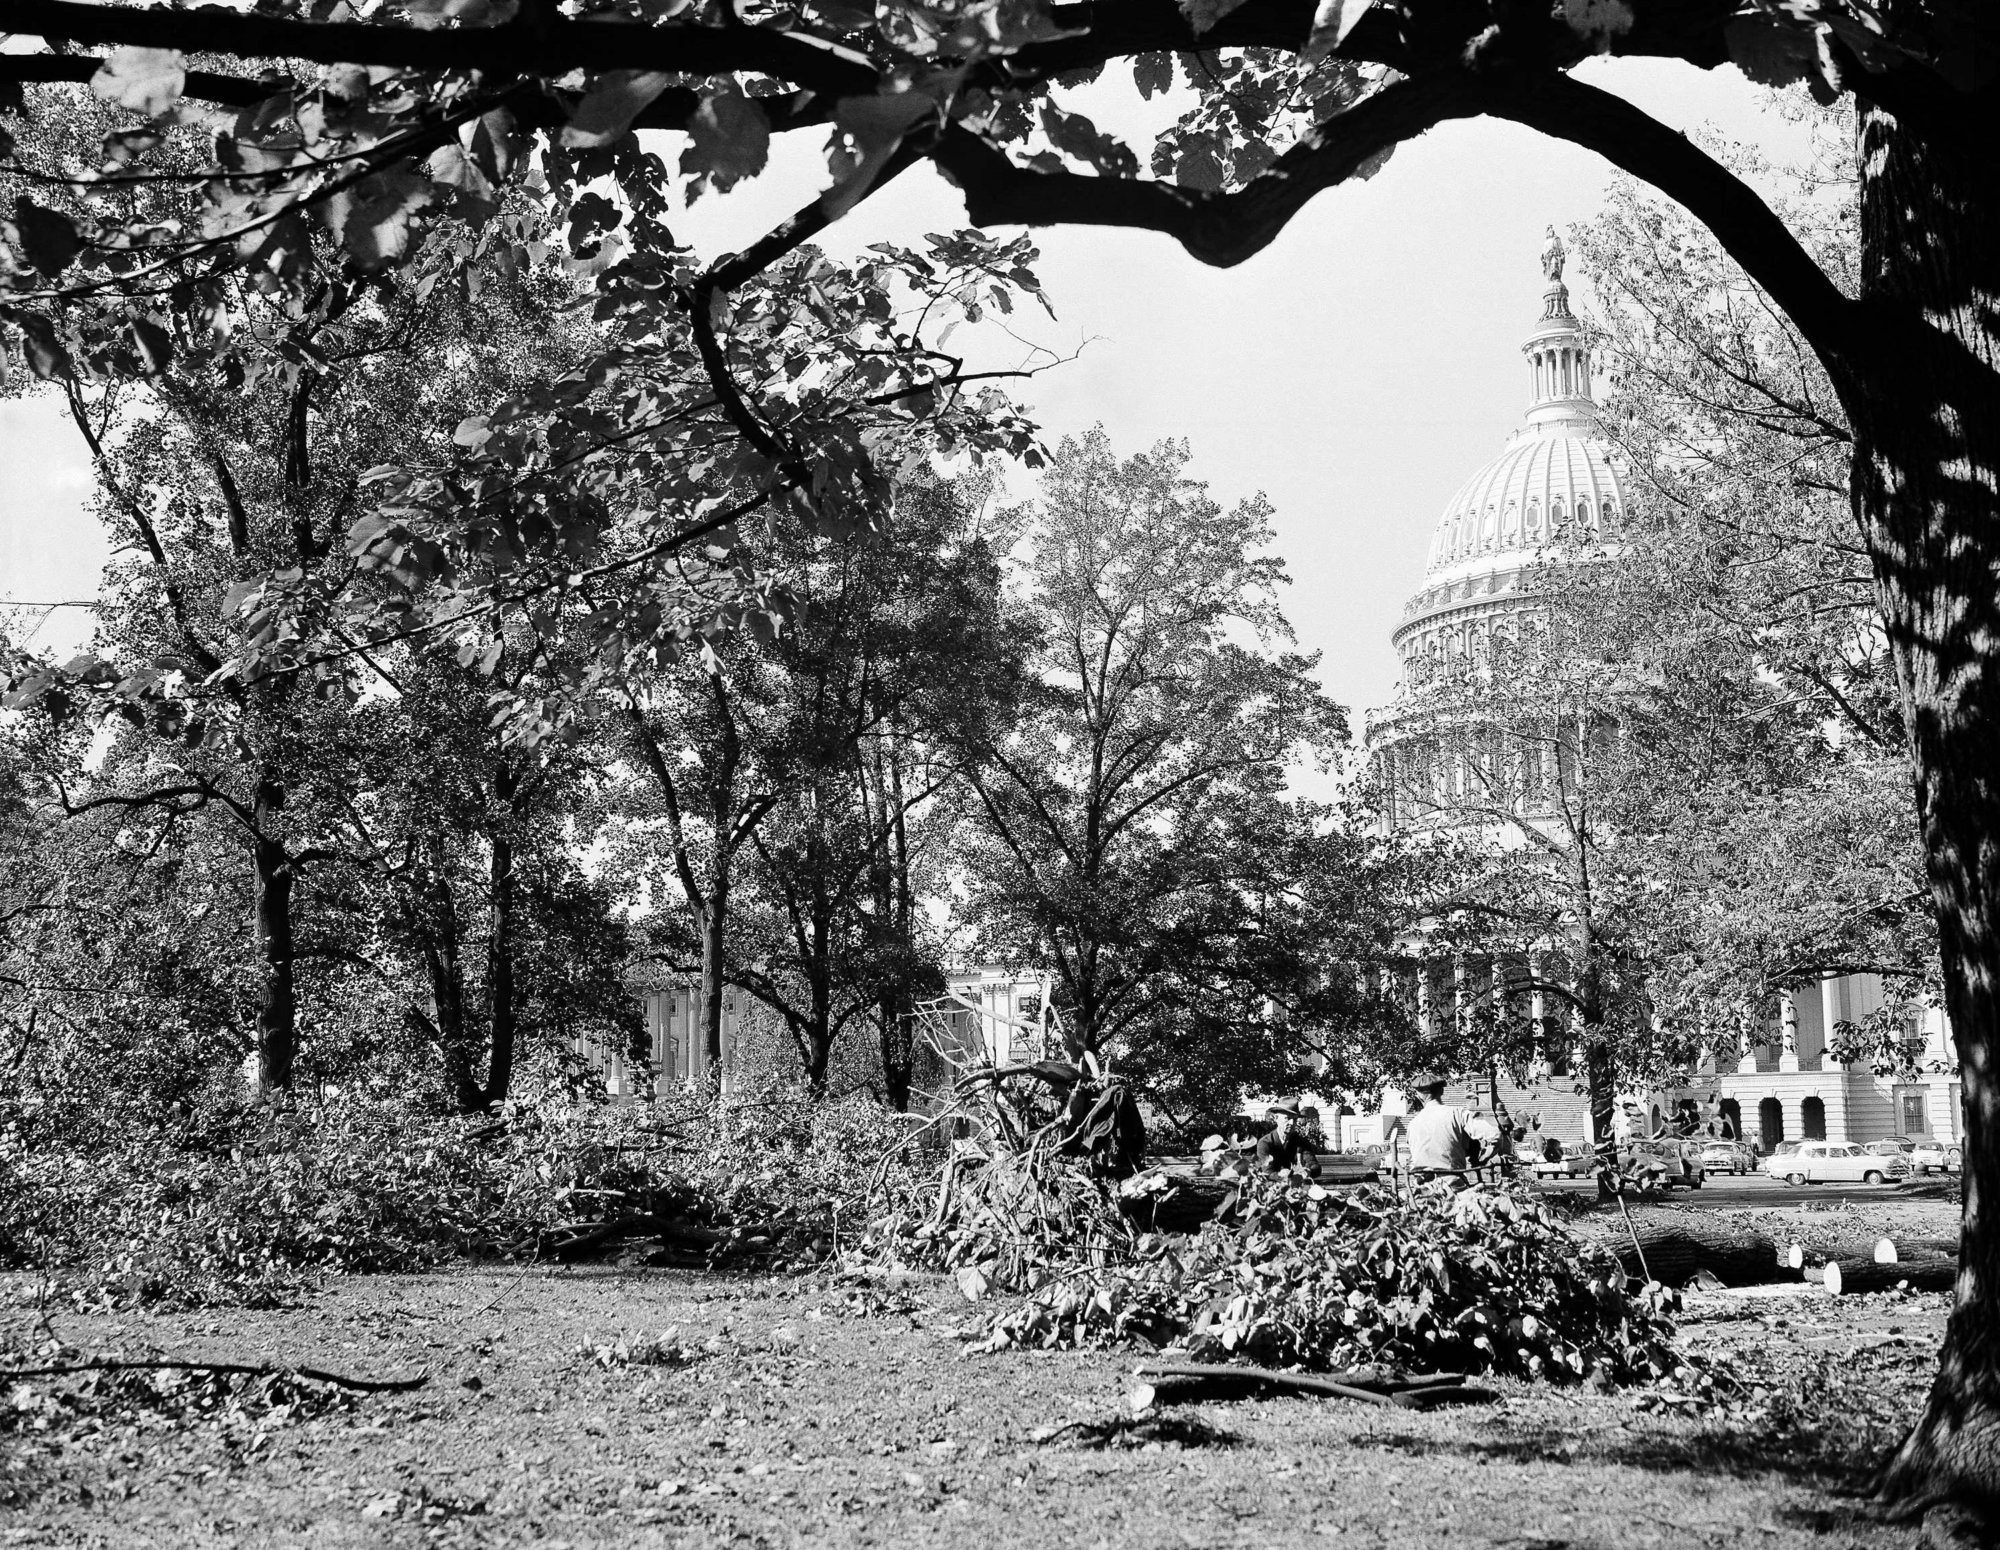 Workmen are busy in Washington, disposing of trees felled on the U.S. Capitol grounds last night by Hurricane Hazel, Oct. 16, 1954. Damage was reported to 27 trees in the area. (AP Photo)